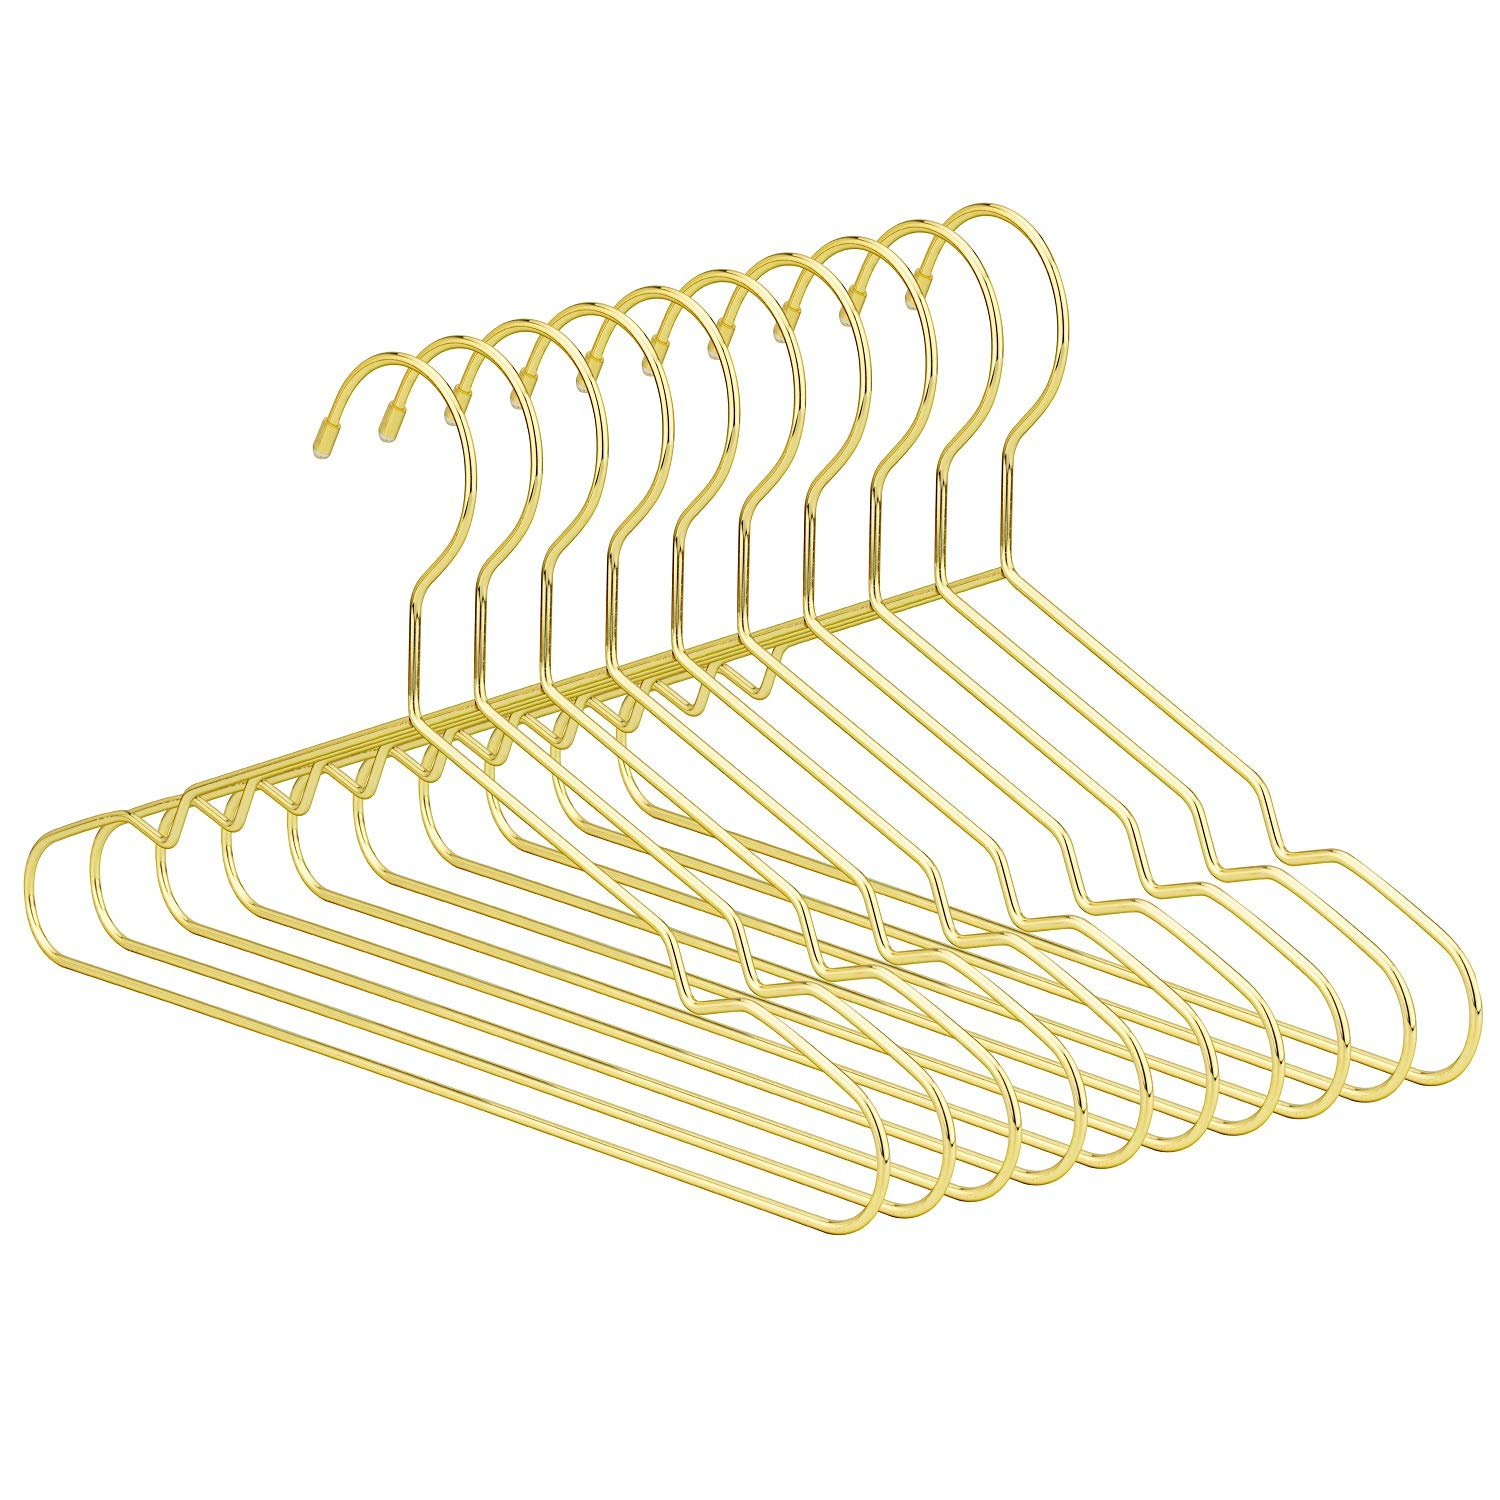 30 Pack Children Hanger Jetdio 12.5 Children Gold Metal Clothes Shirts Hanger with Notches Cute Small Strong Coats Hanger for Kids